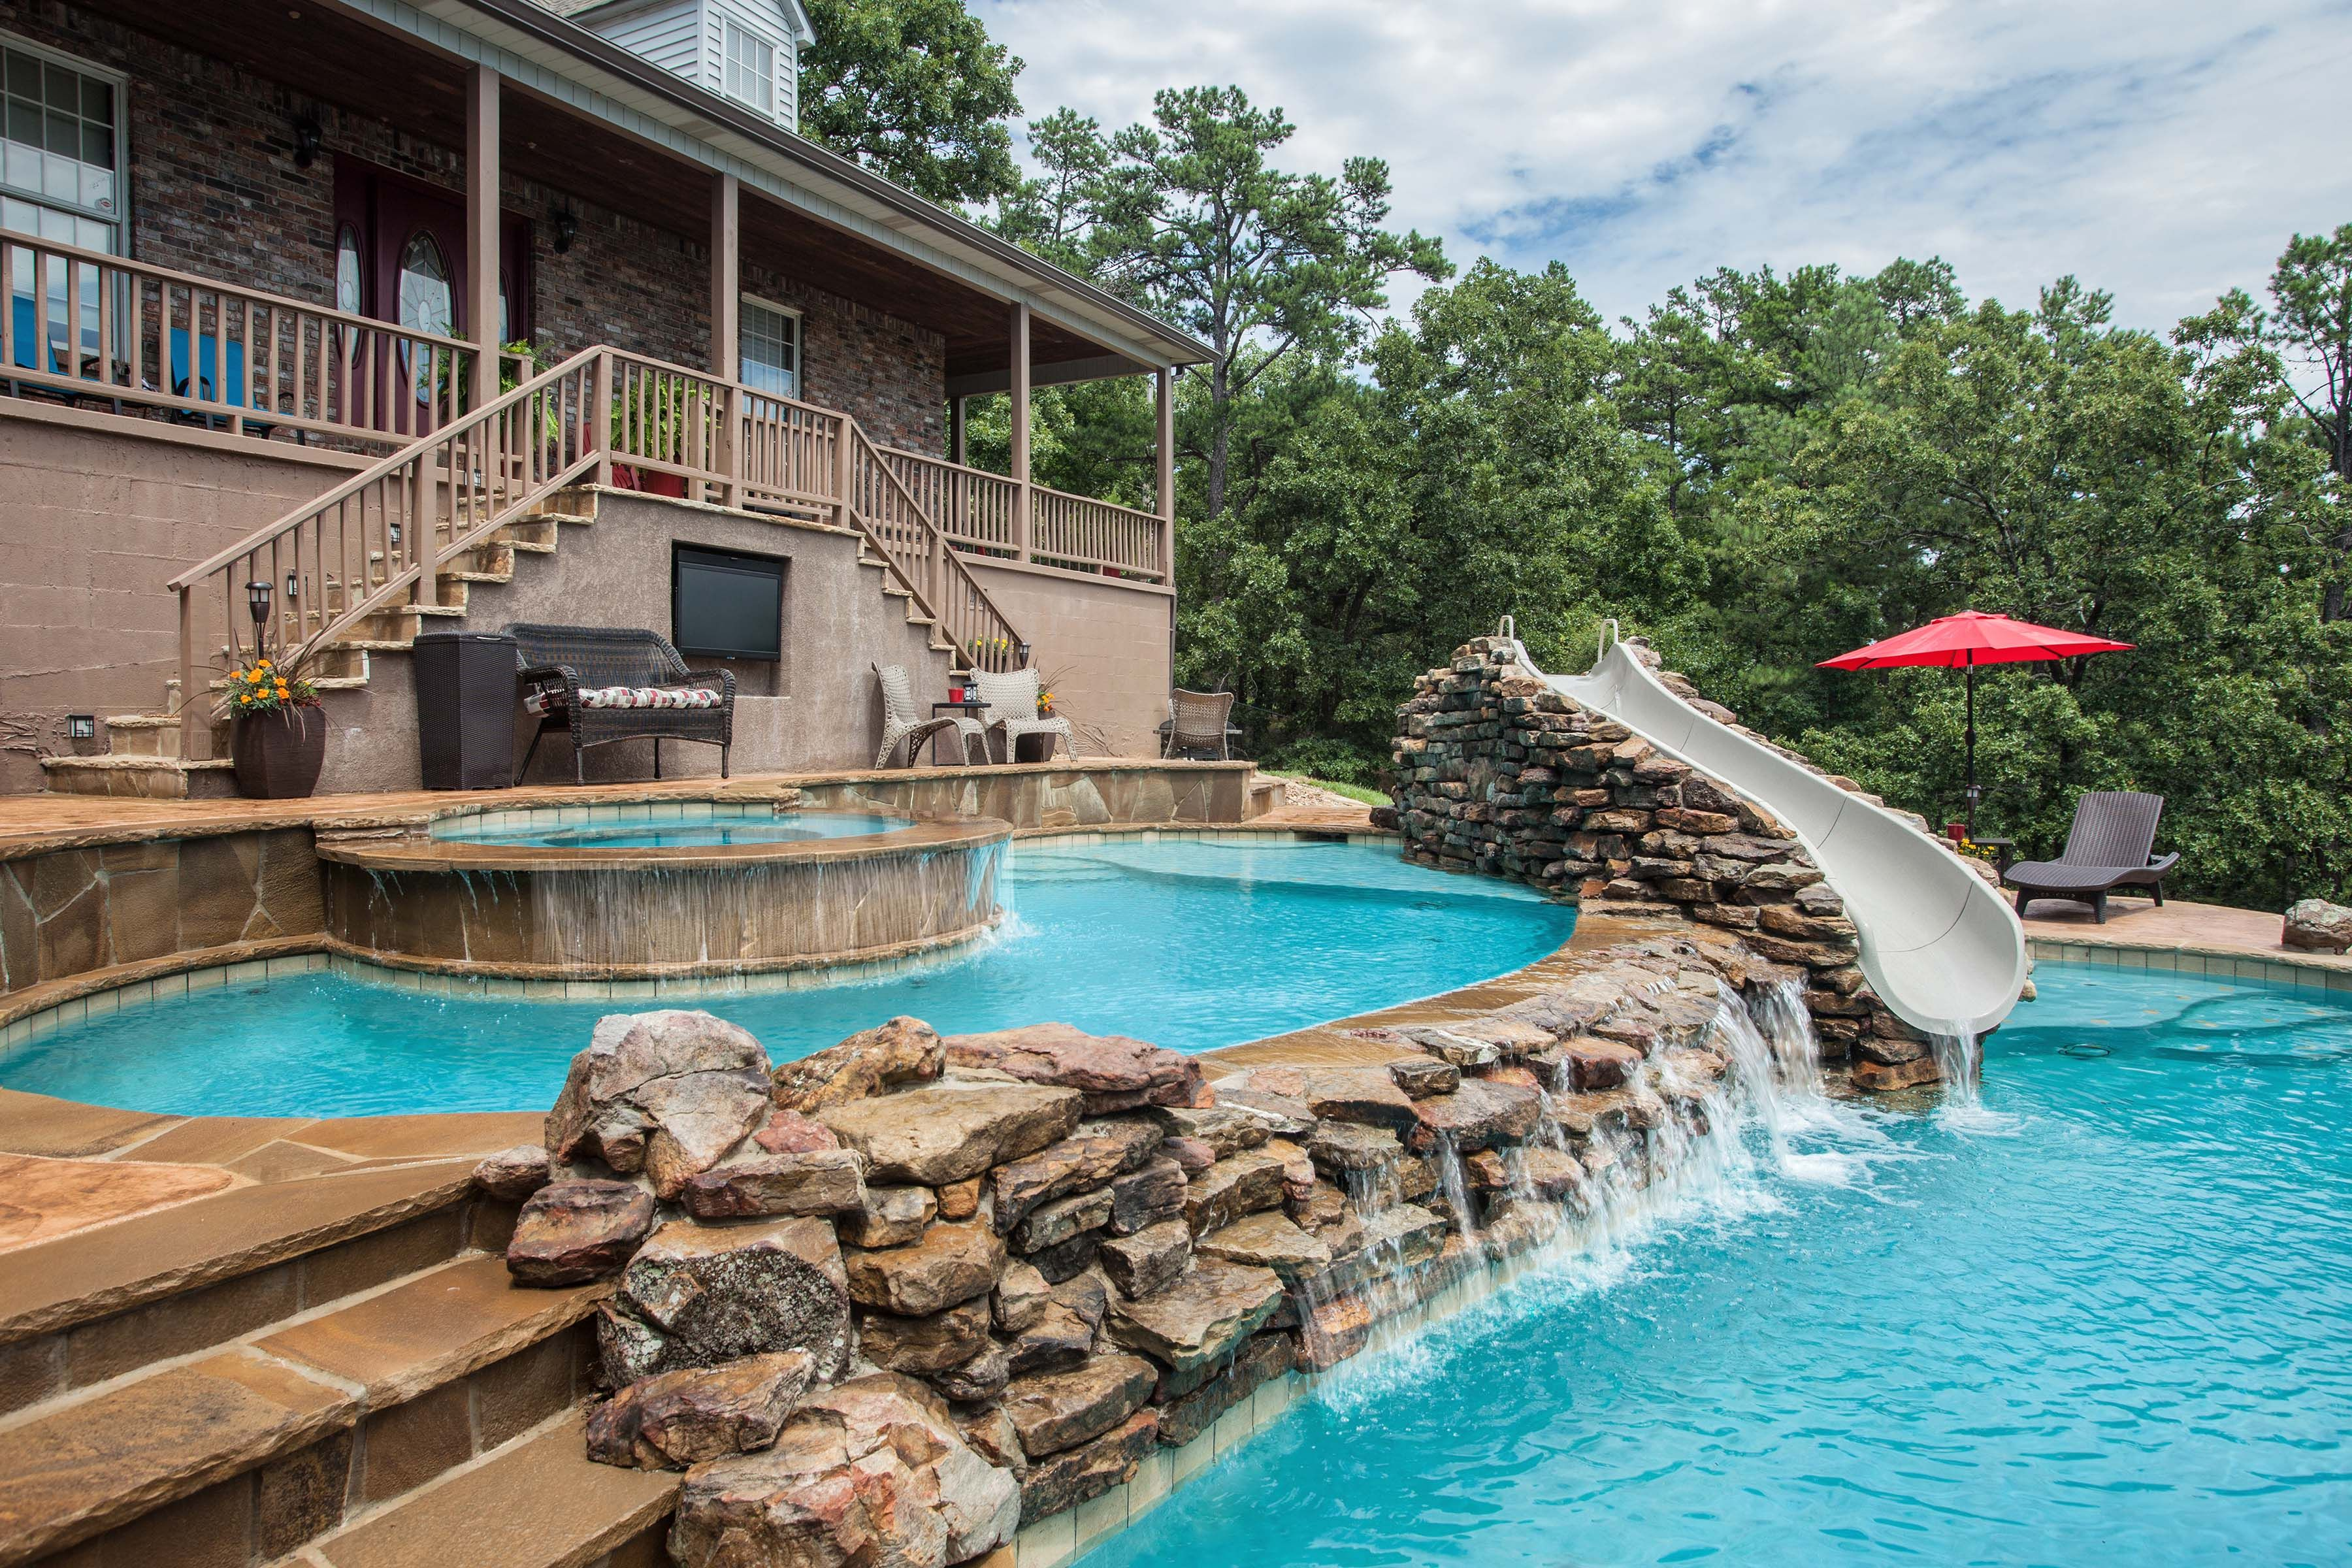 Build Your Dream Pool With Morehead Poolsu0027 Pool Design U0026 Construction  Services. Call Us At To Set An Appointment. Check Our Pool Gallery Today!